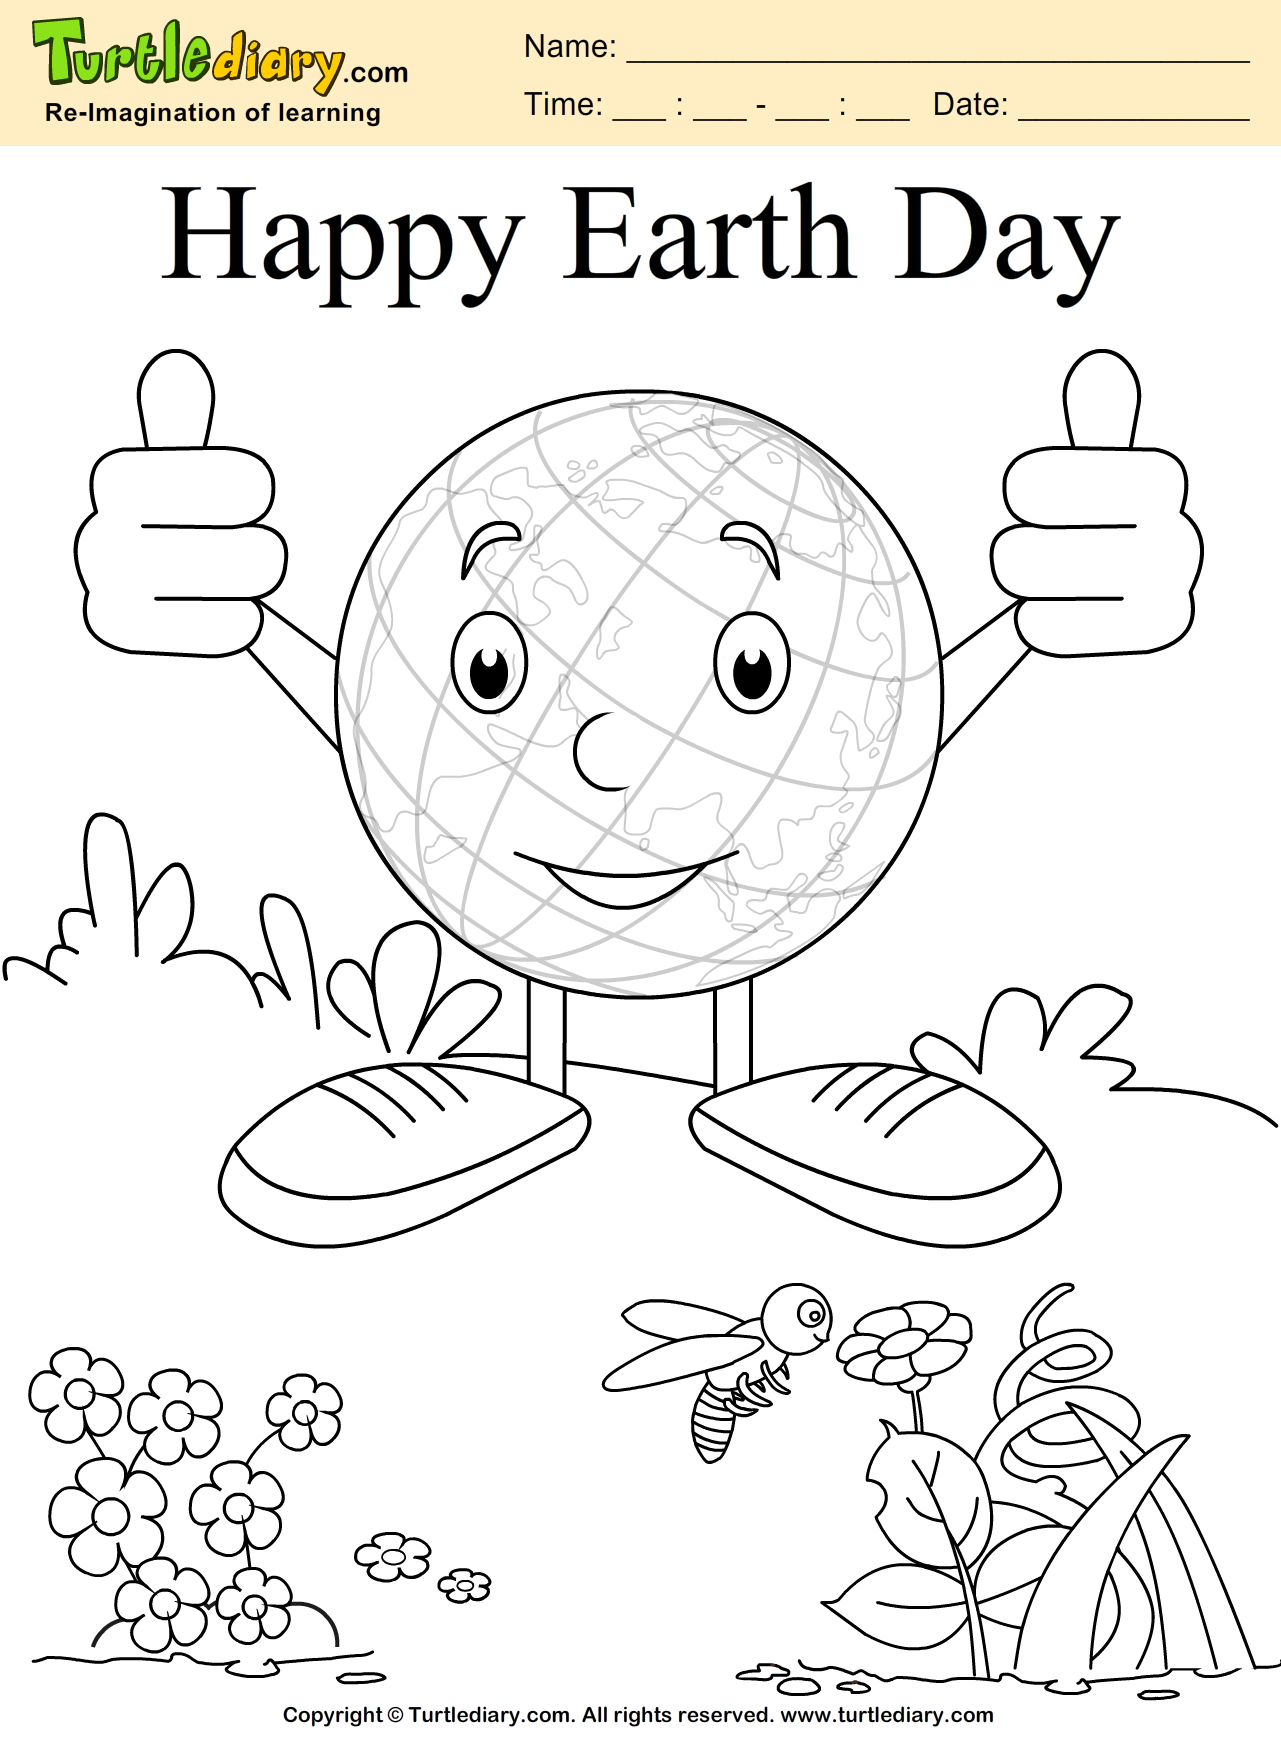 Happy Earth Day Coloring Page Kids Crafts Coloring TurtleDiary